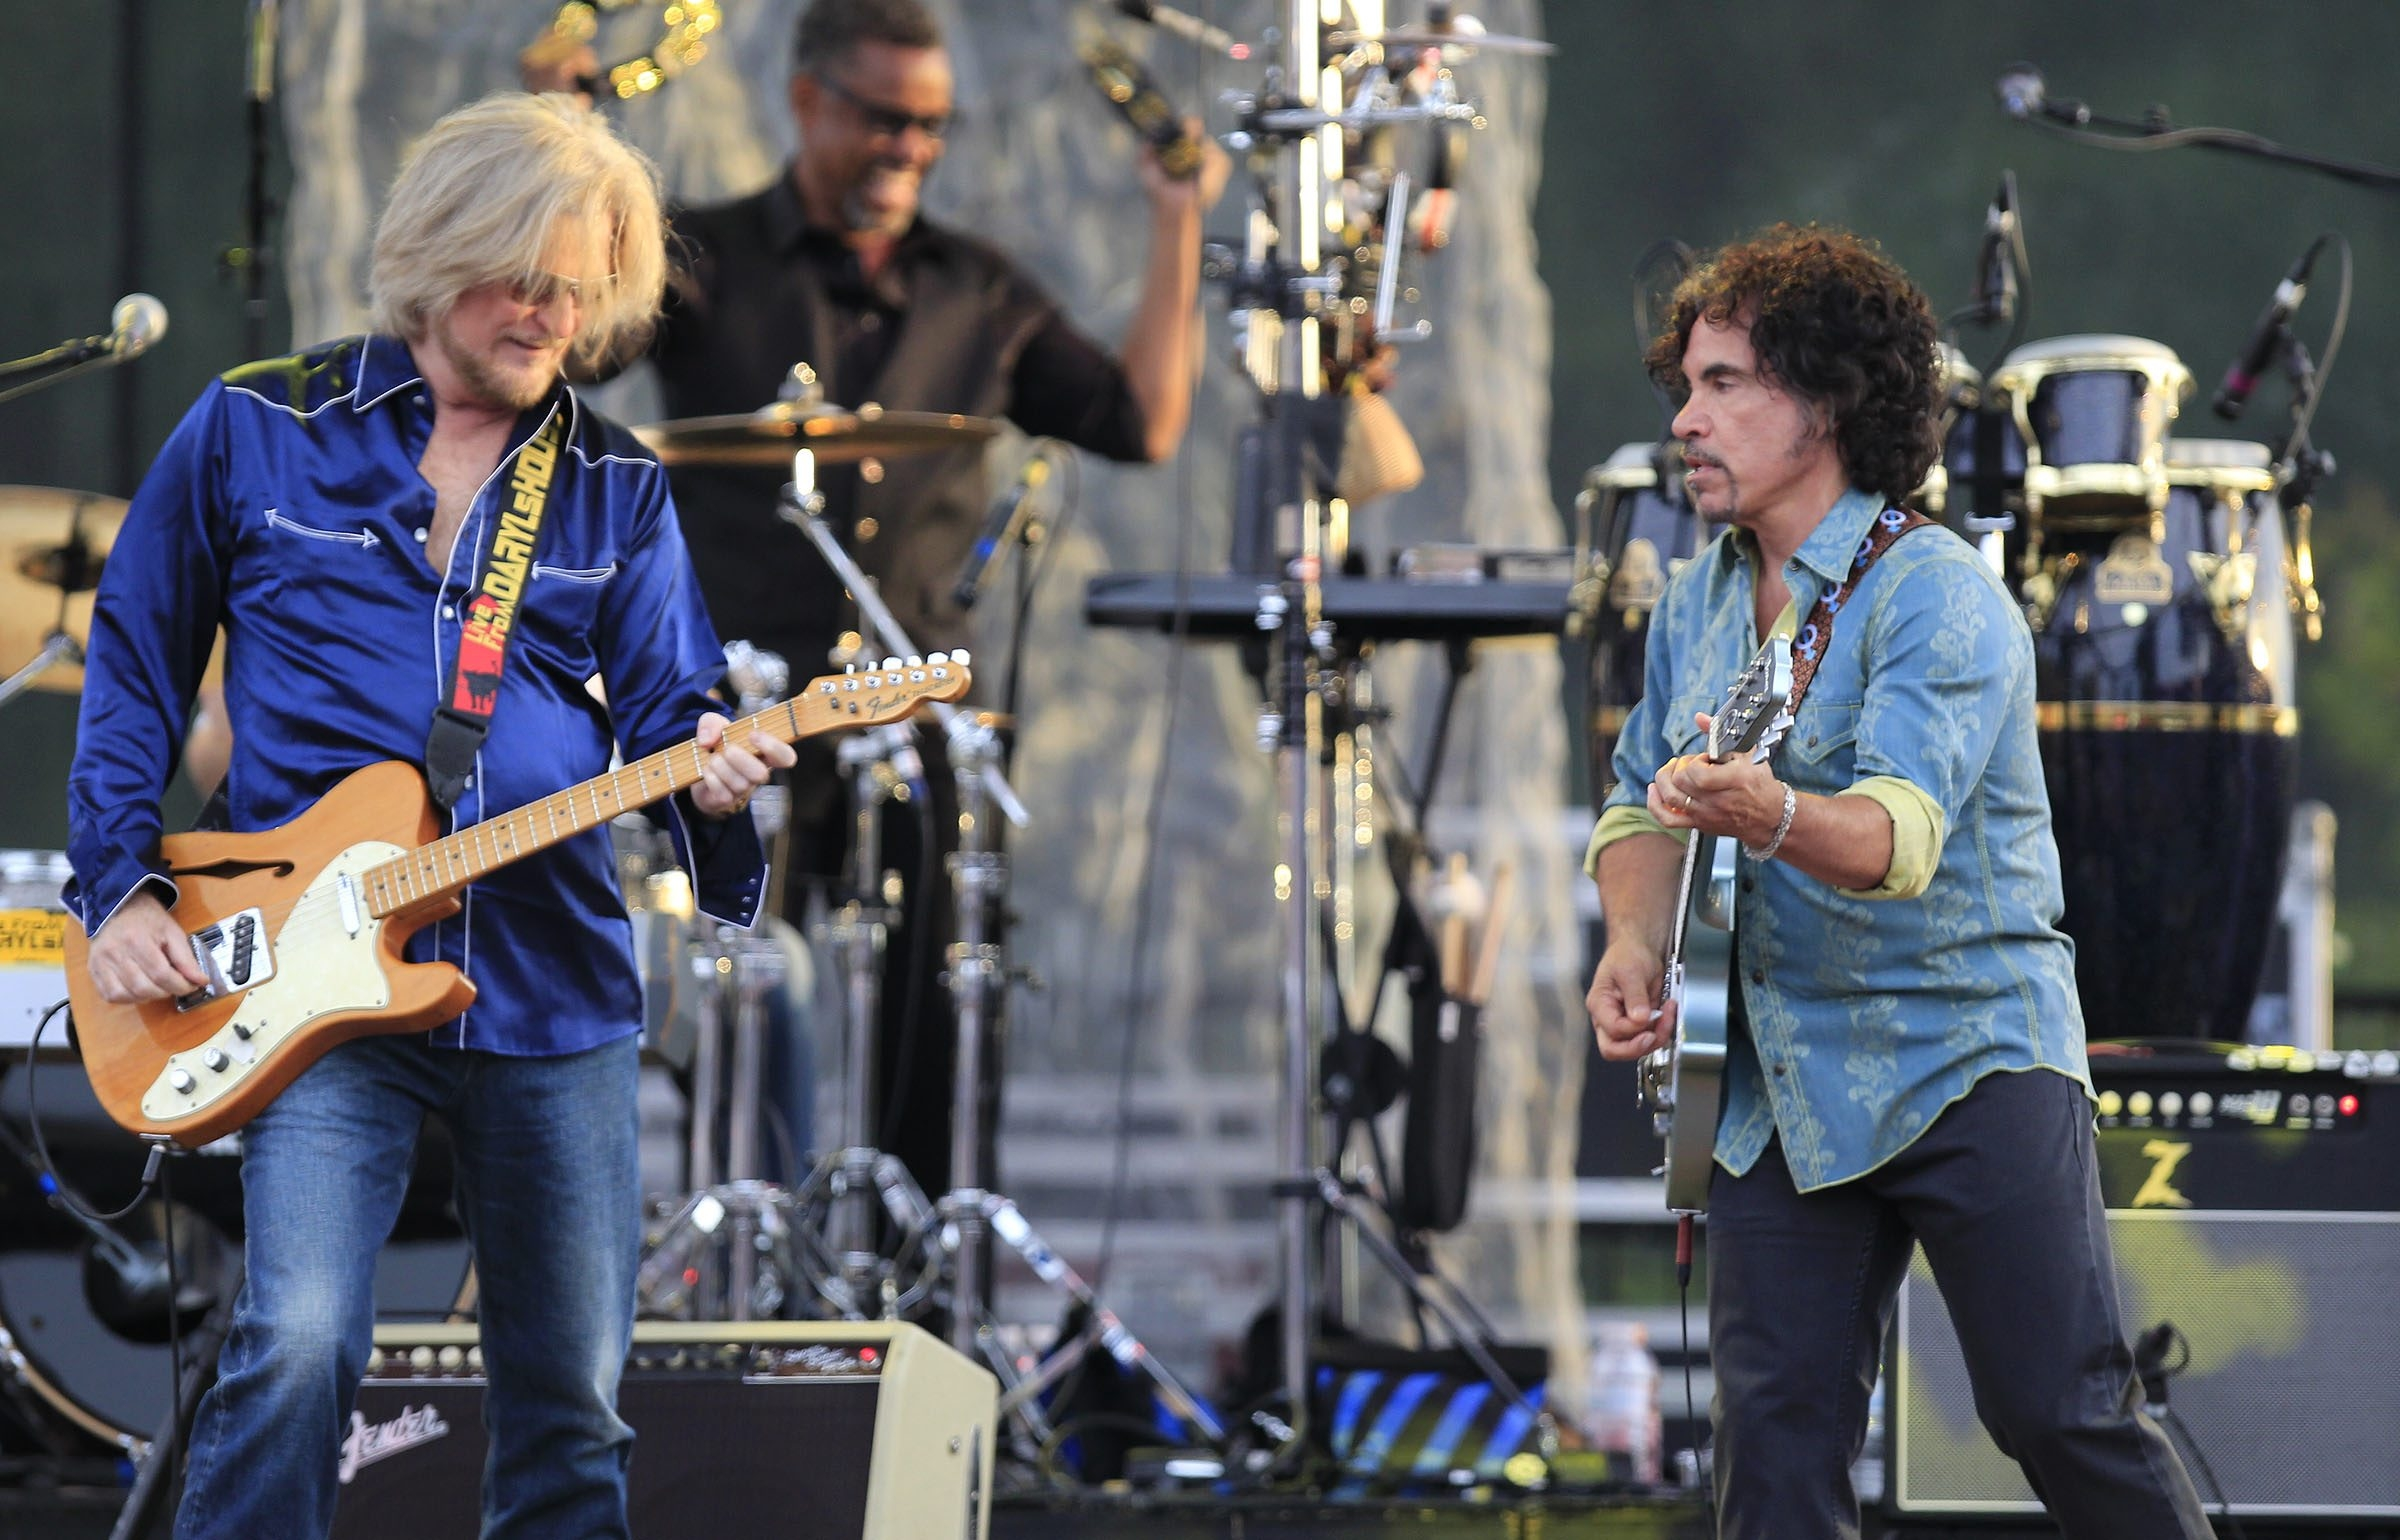 Hall & Oates perform at Artpark on Tuesday. The show was sold out.  (Harry Scull Jr. /Buffalo News)